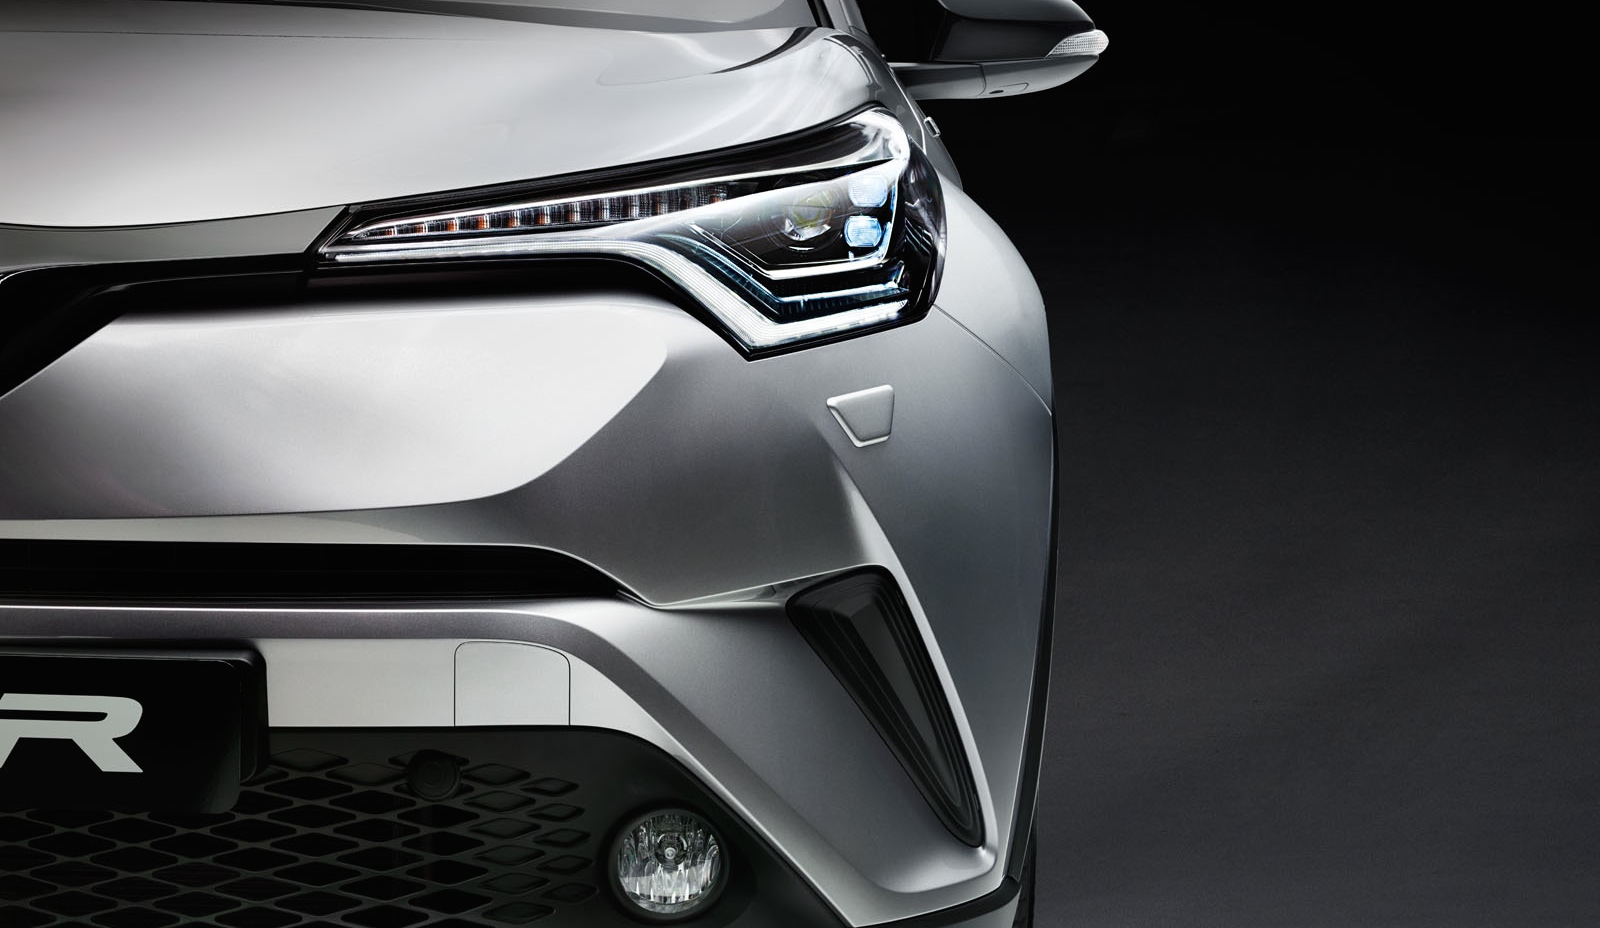 Toyota C-HR, close-up of front left headlight.